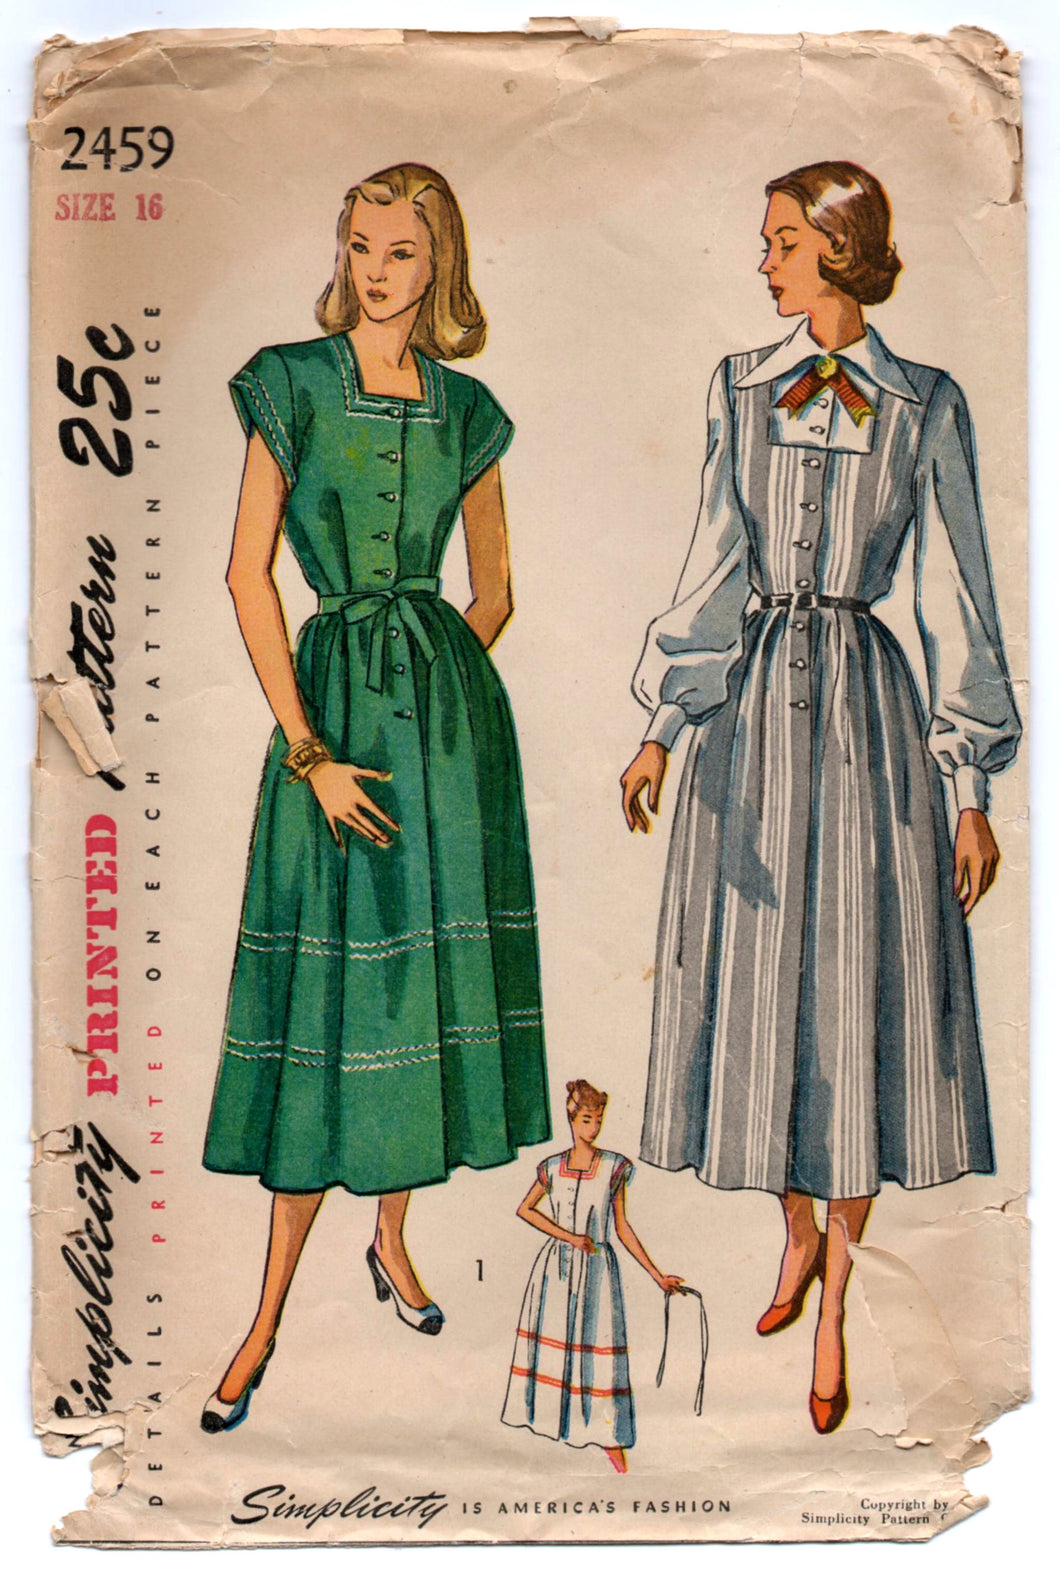 1940's Simplicity Maternity Dress, Jumper and Blouse Pattern - Bust 34